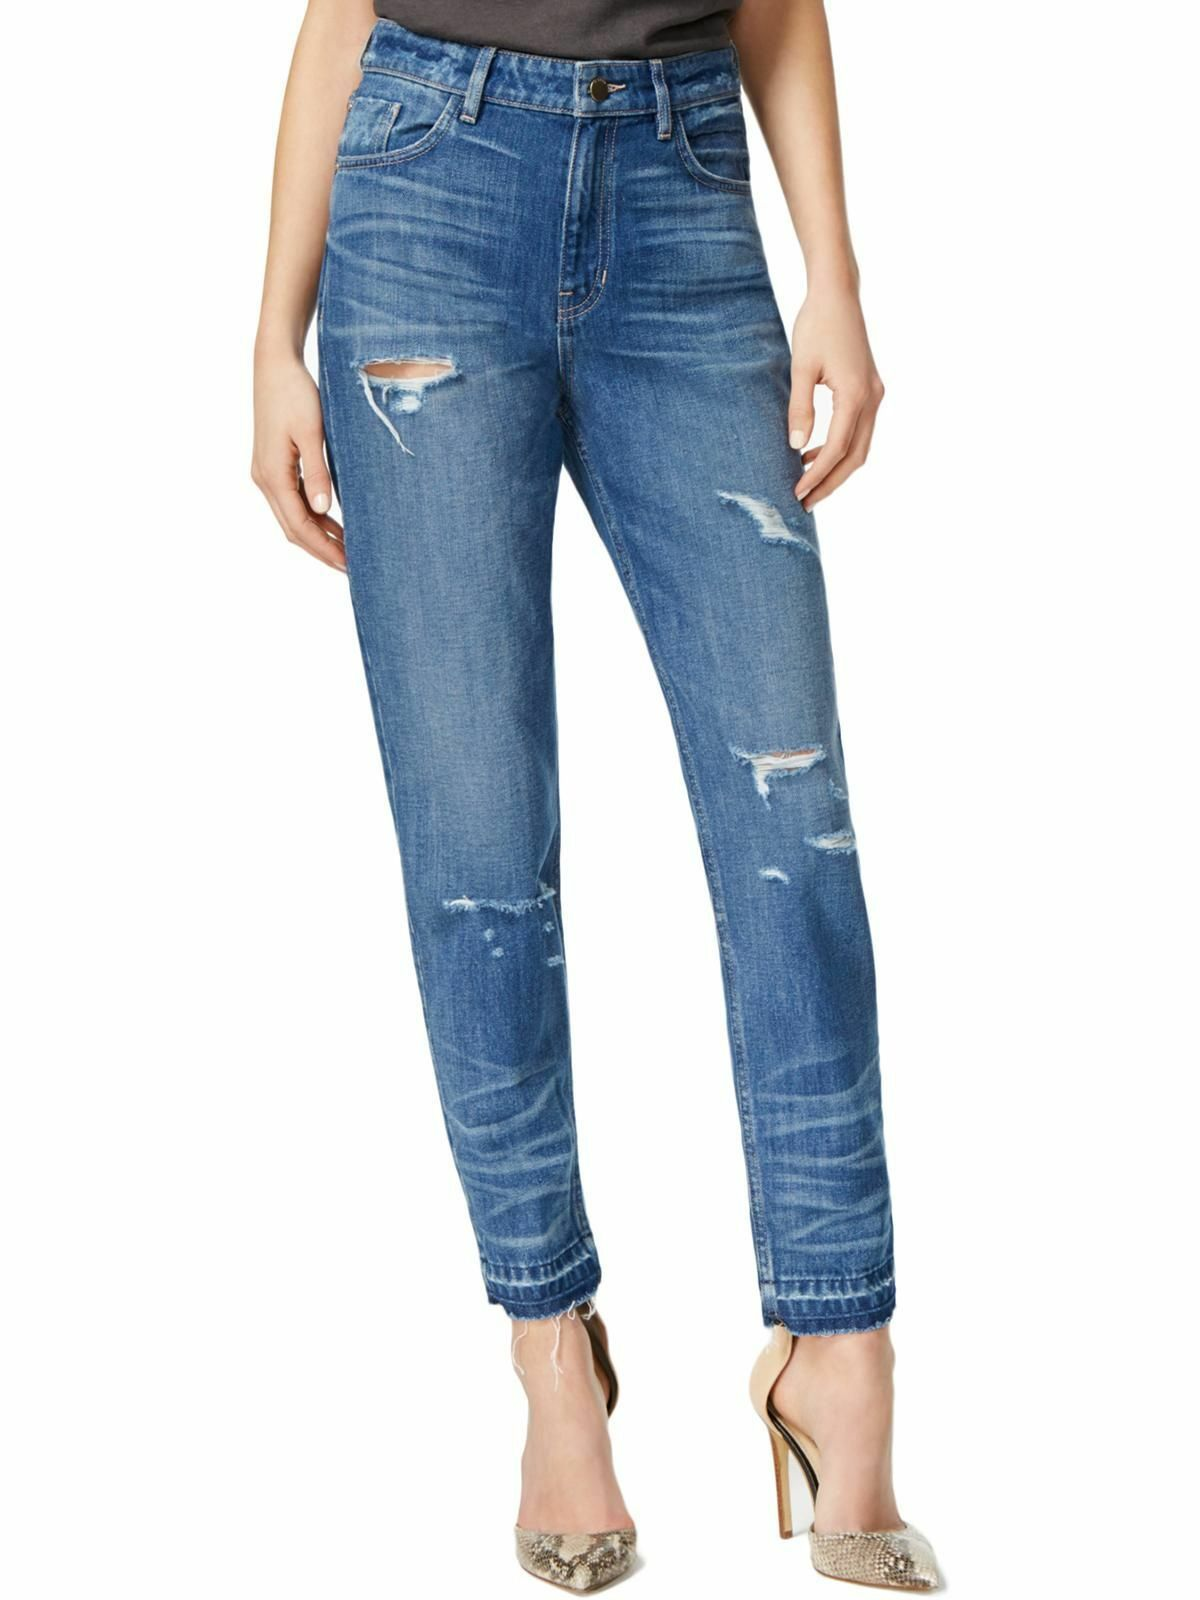 GUESS 9748 Womens Distressed Skinny Jeans - Medium Wash Size 24